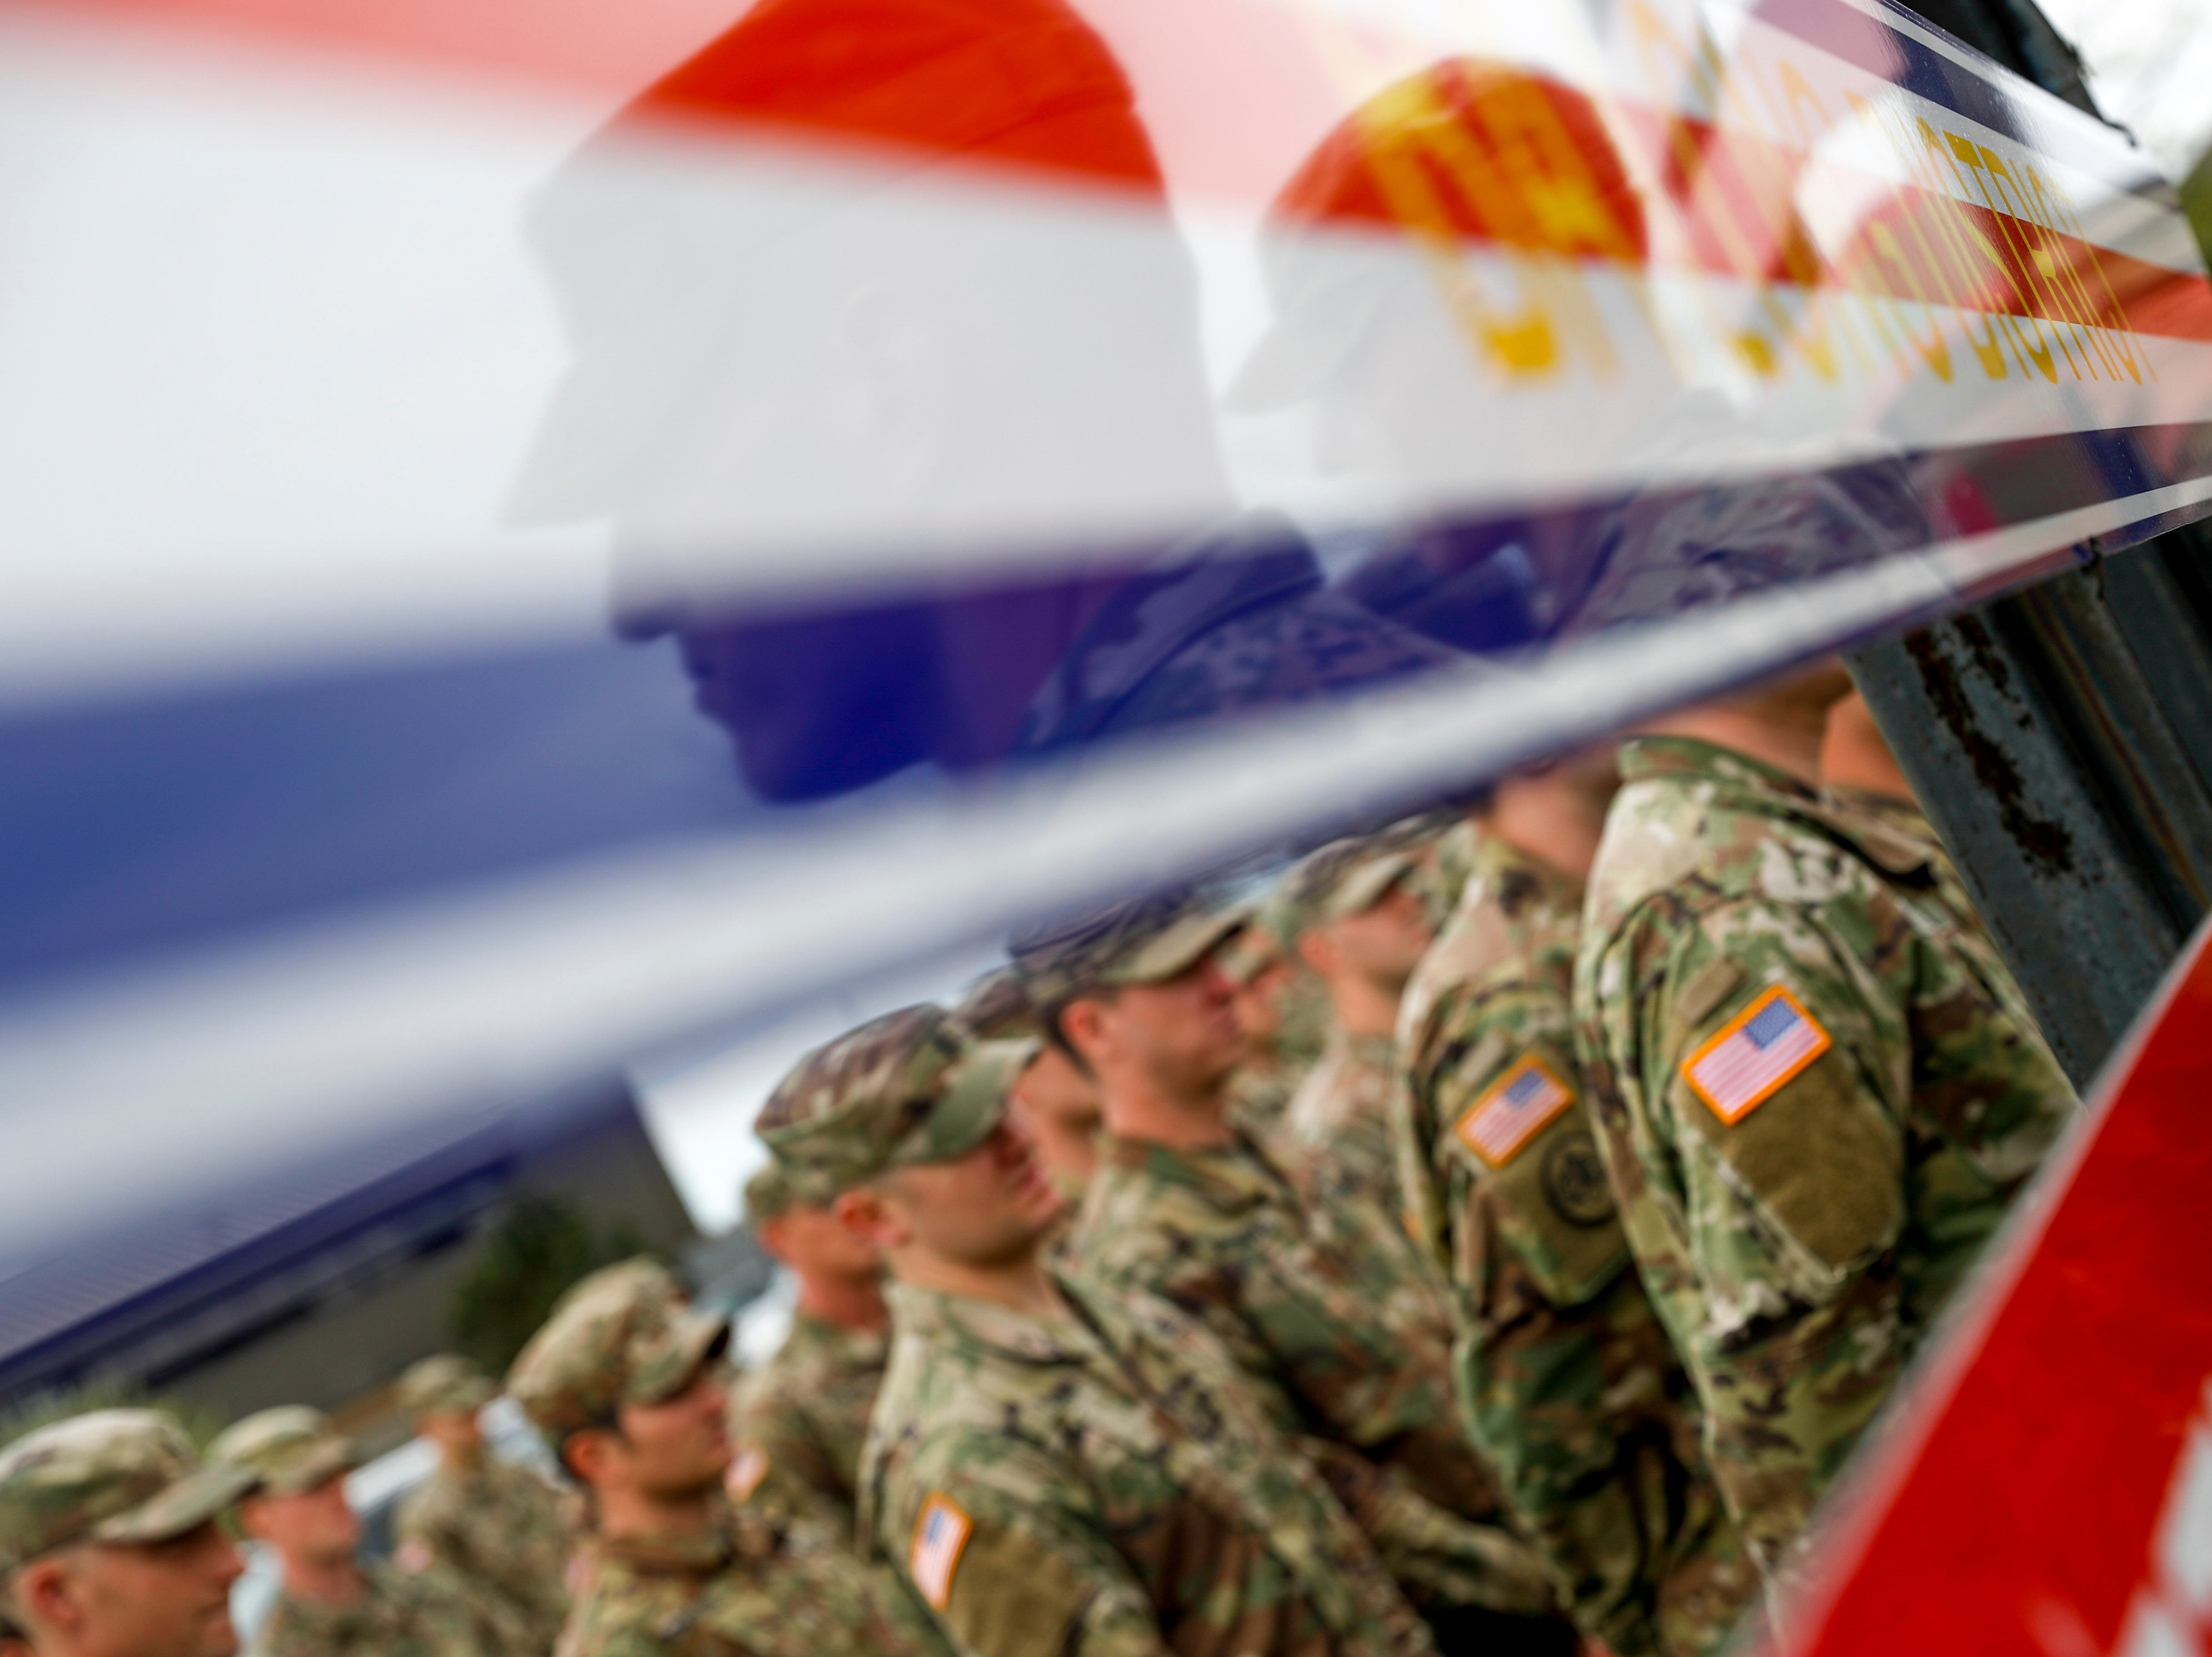 Soldiers stand and watch their fellow soldiers at attention during a colors casing ceremony prior to deployment for Ukraine at 2 BCT Headquarters in Fort Campbell, KY., on Friday, April 12, 2019.